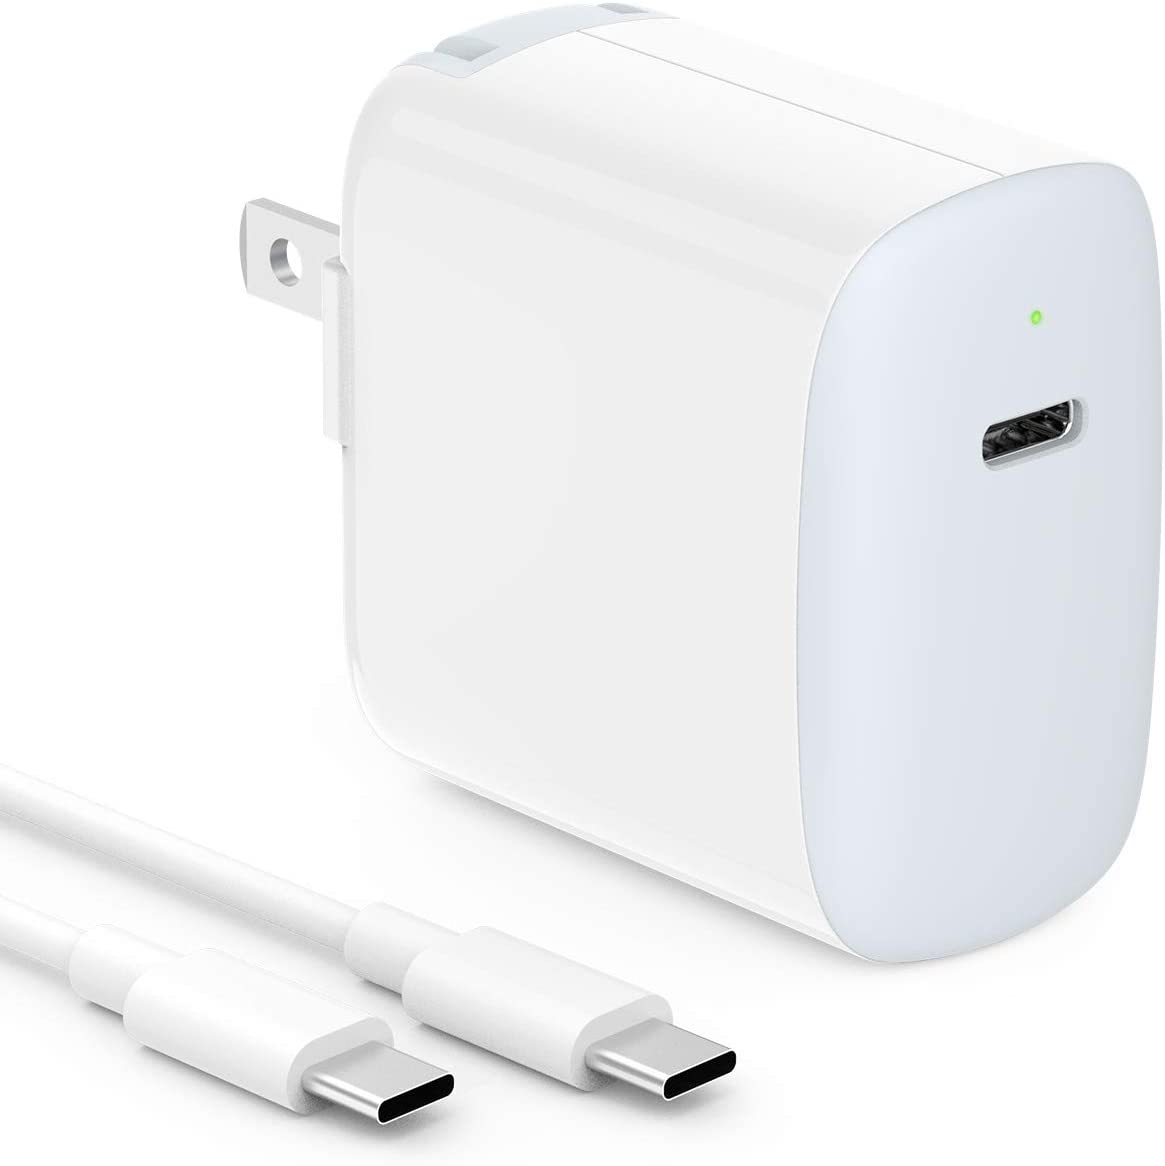 Save 5% on iPad 30W USB C Fast Charger